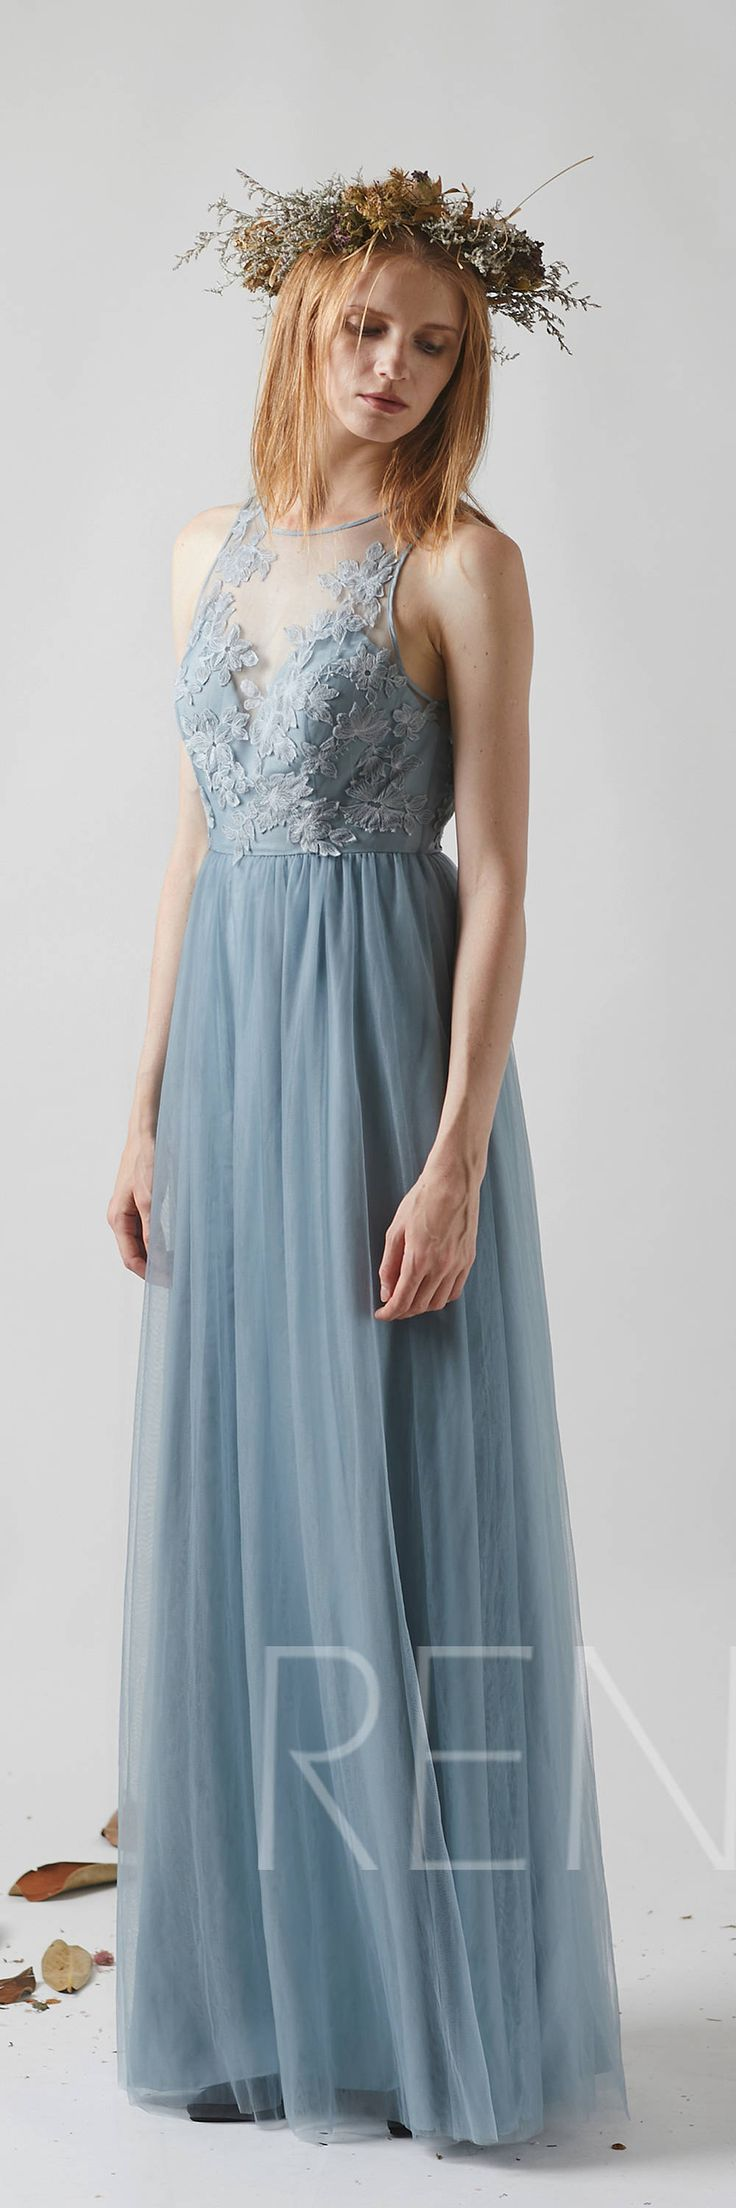 Dusty Blue Tulle Bridesmaid Dress, Sexy Lace Illusion Wedding Dress, Boat Neck Prom Dress,Key Hole Back Evening Dress Floor Length (LS351)